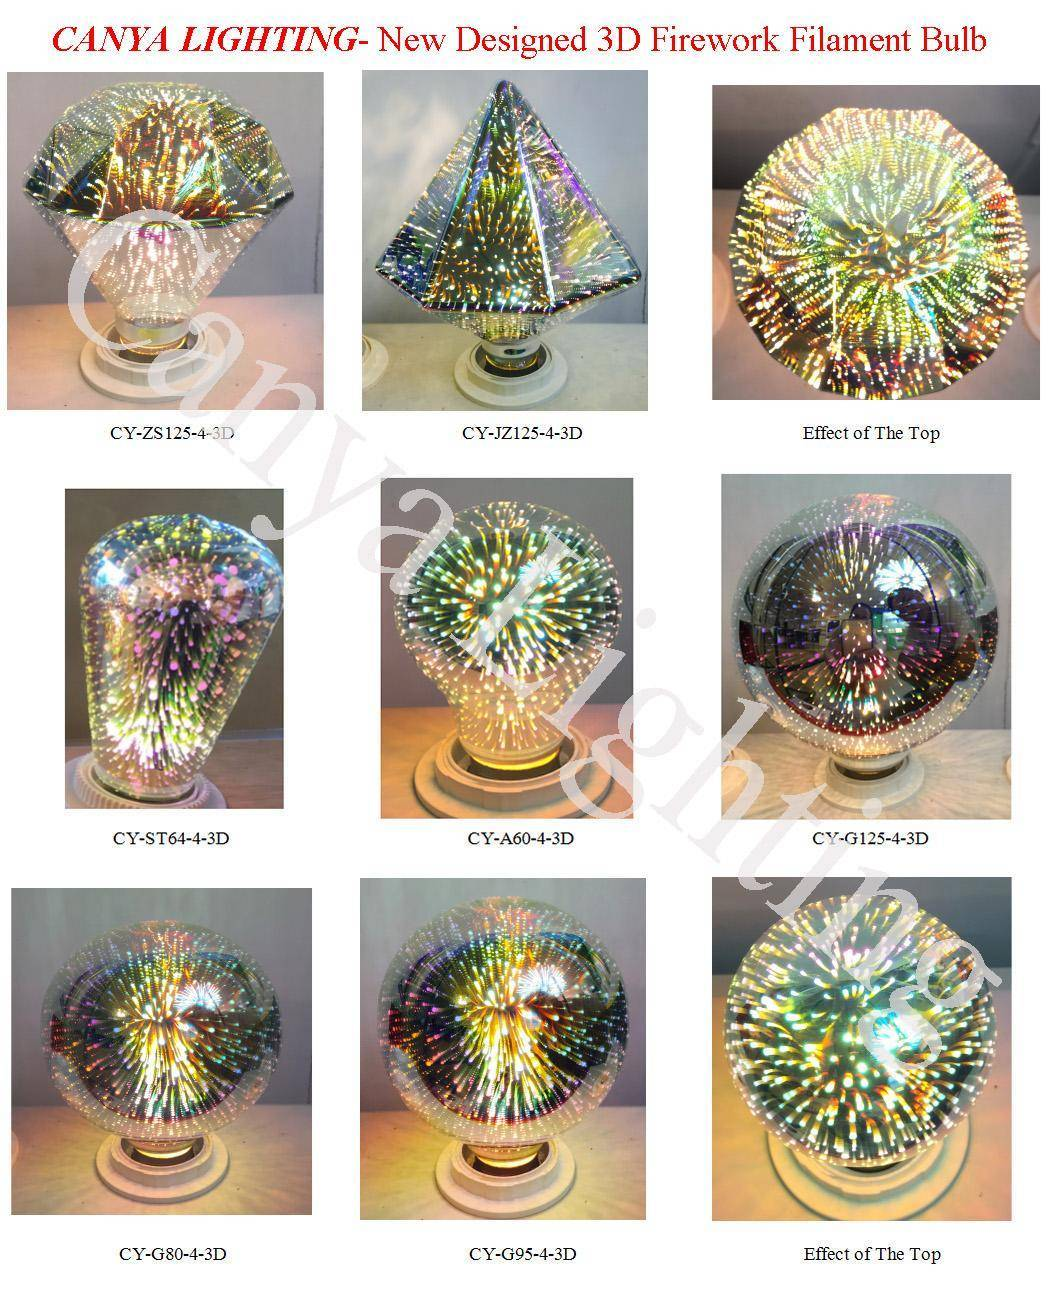 High Performance Christmas LED Lighting 3D Firework Filament Bulb